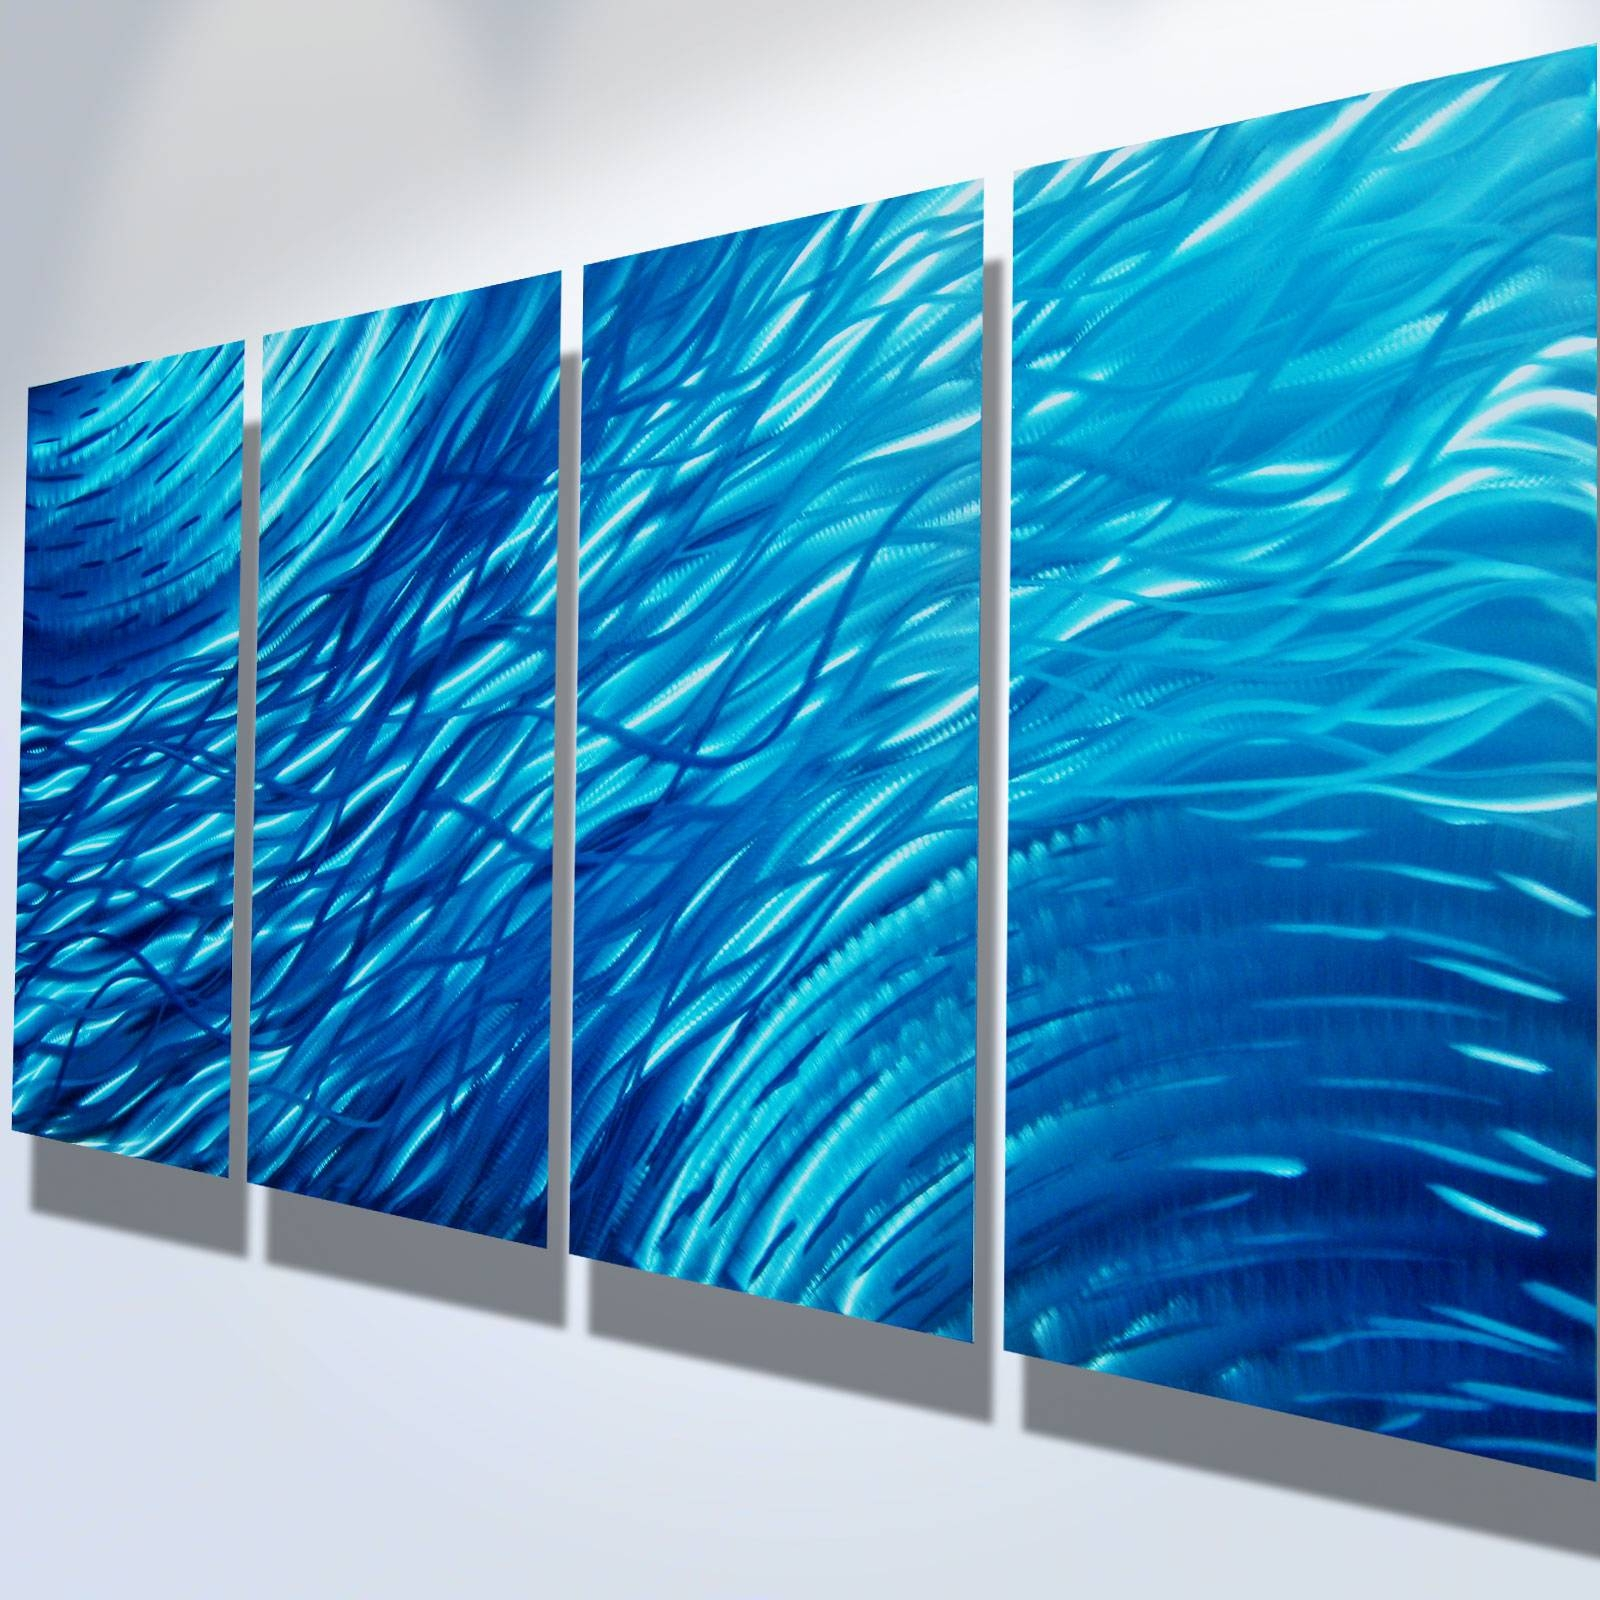 Ocean Metal Wall Art Abstract Contemporary Modern Decor Intended For Most Recently Released Blue Metal Wall Art (Gallery 4 of 20)